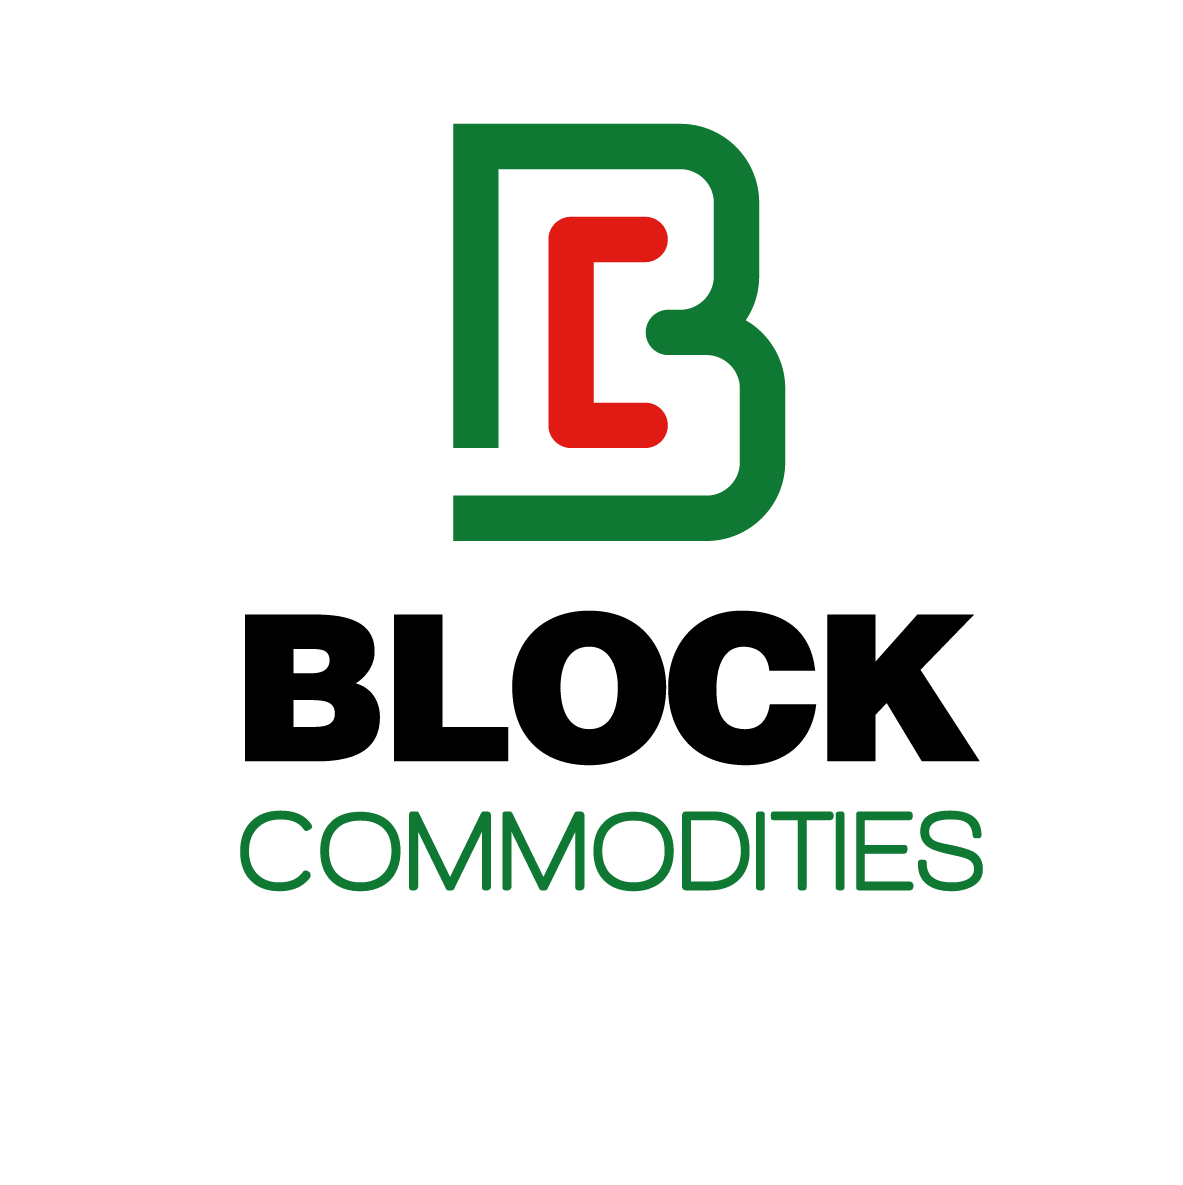 Block Commodities logo copy.png